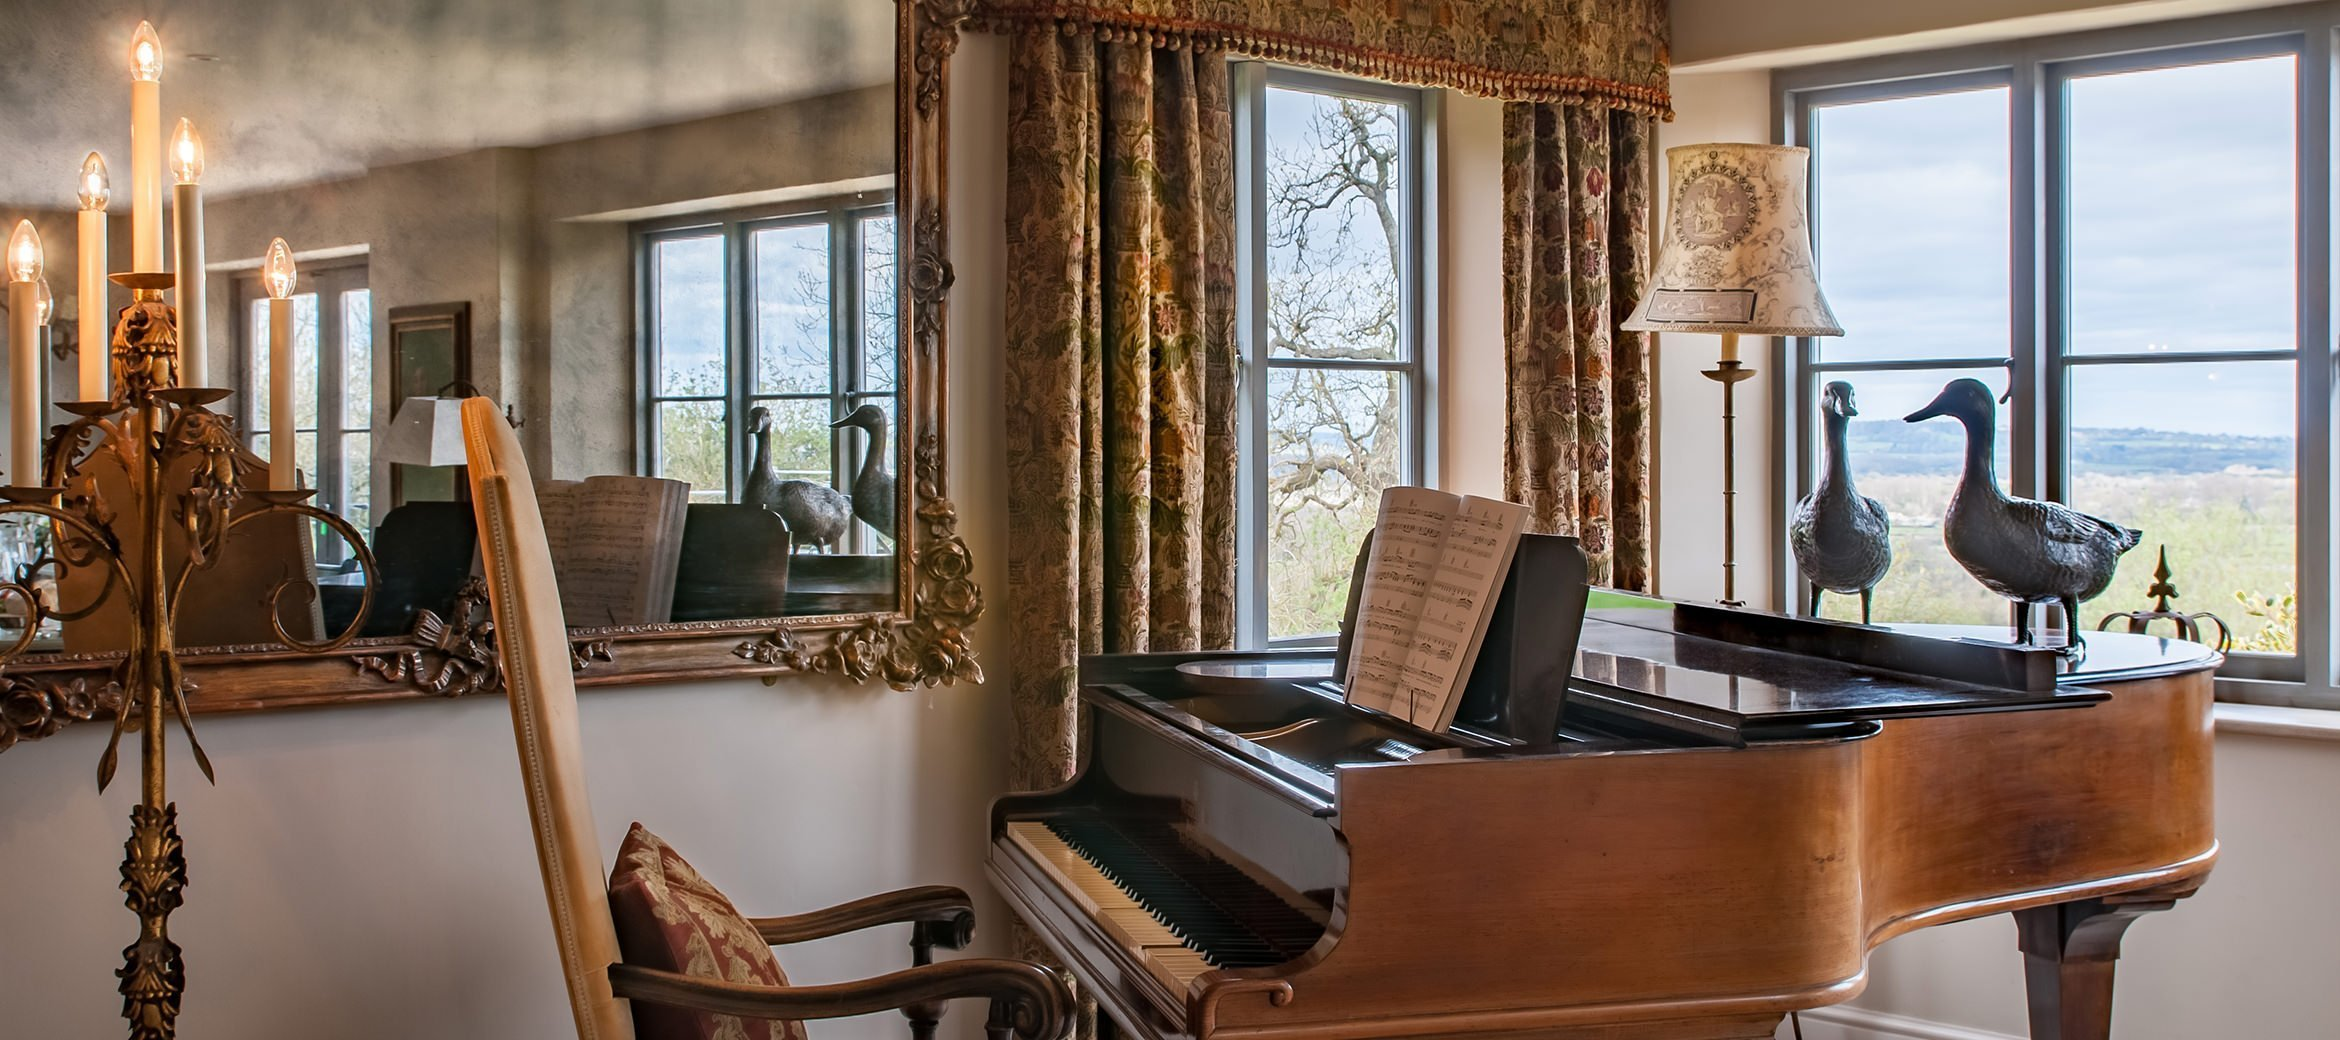 sixpenny-luxury-cotswold-cottage-baby-grand-piano